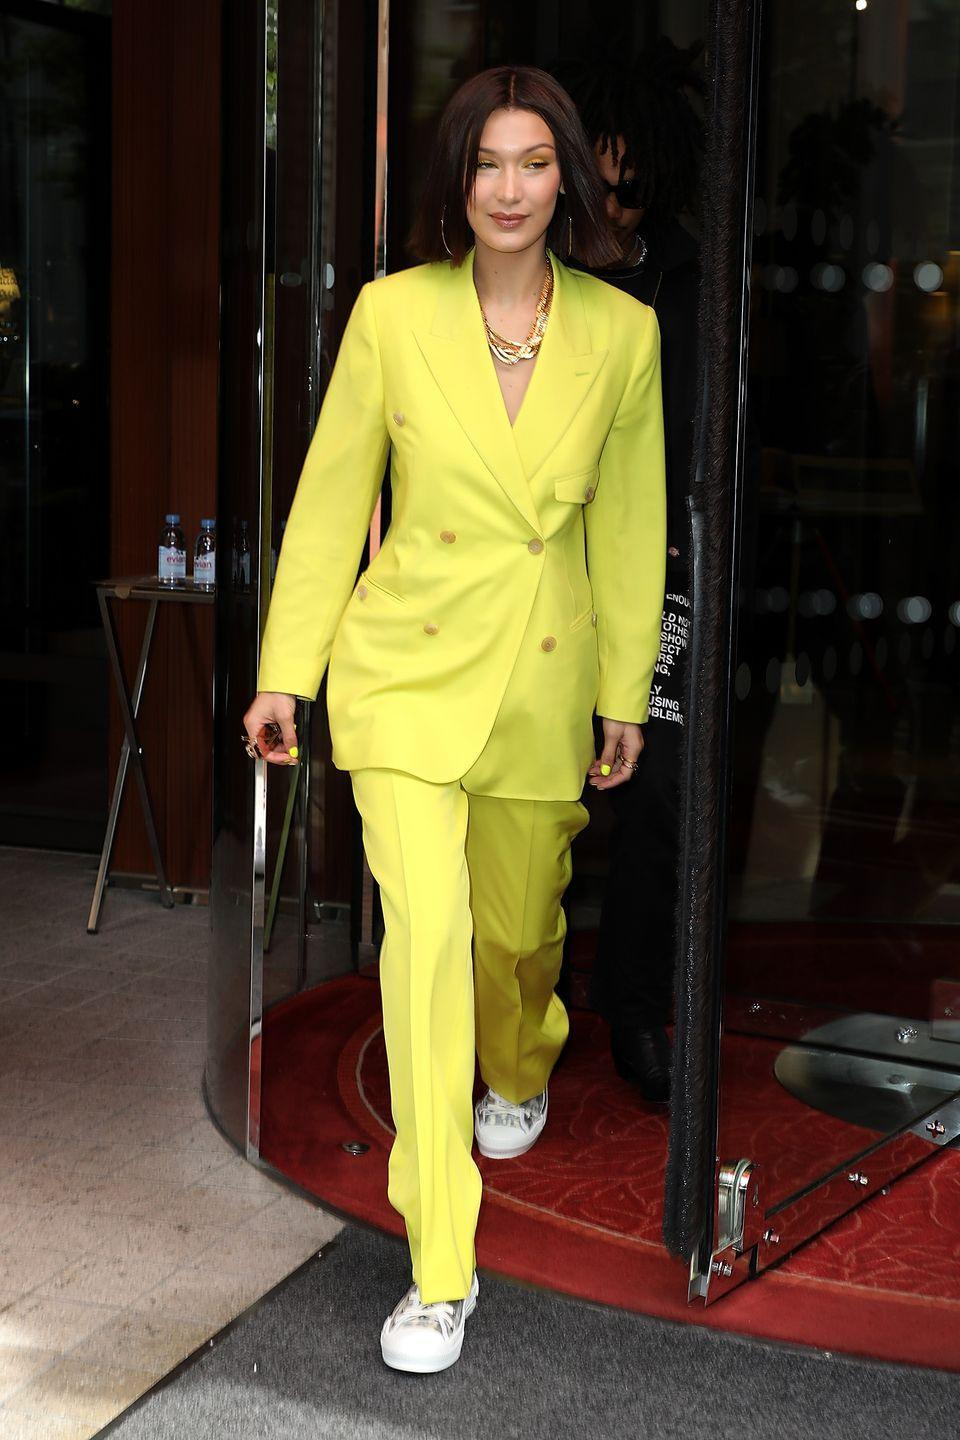 """<p>Wearing a bright yellow suit, heading to the Dior Homme show in Paris. <em><a href=""""http://www.dailymail.co.uk/tvshowbiz/article-5879961/Bella-Hadid-reveals-slender-waistline-tiny-crop-steps-Paris.html"""" rel=""""nofollow noopener"""" target=""""_blank"""" data-ylk=""""slk:The Daily Mail"""" class=""""link rapid-noclick-resp"""">The Daily Mail</a></em> reports that Hadid had a wardrobe malfunction later in the day in the form of a nip slip. </p>"""